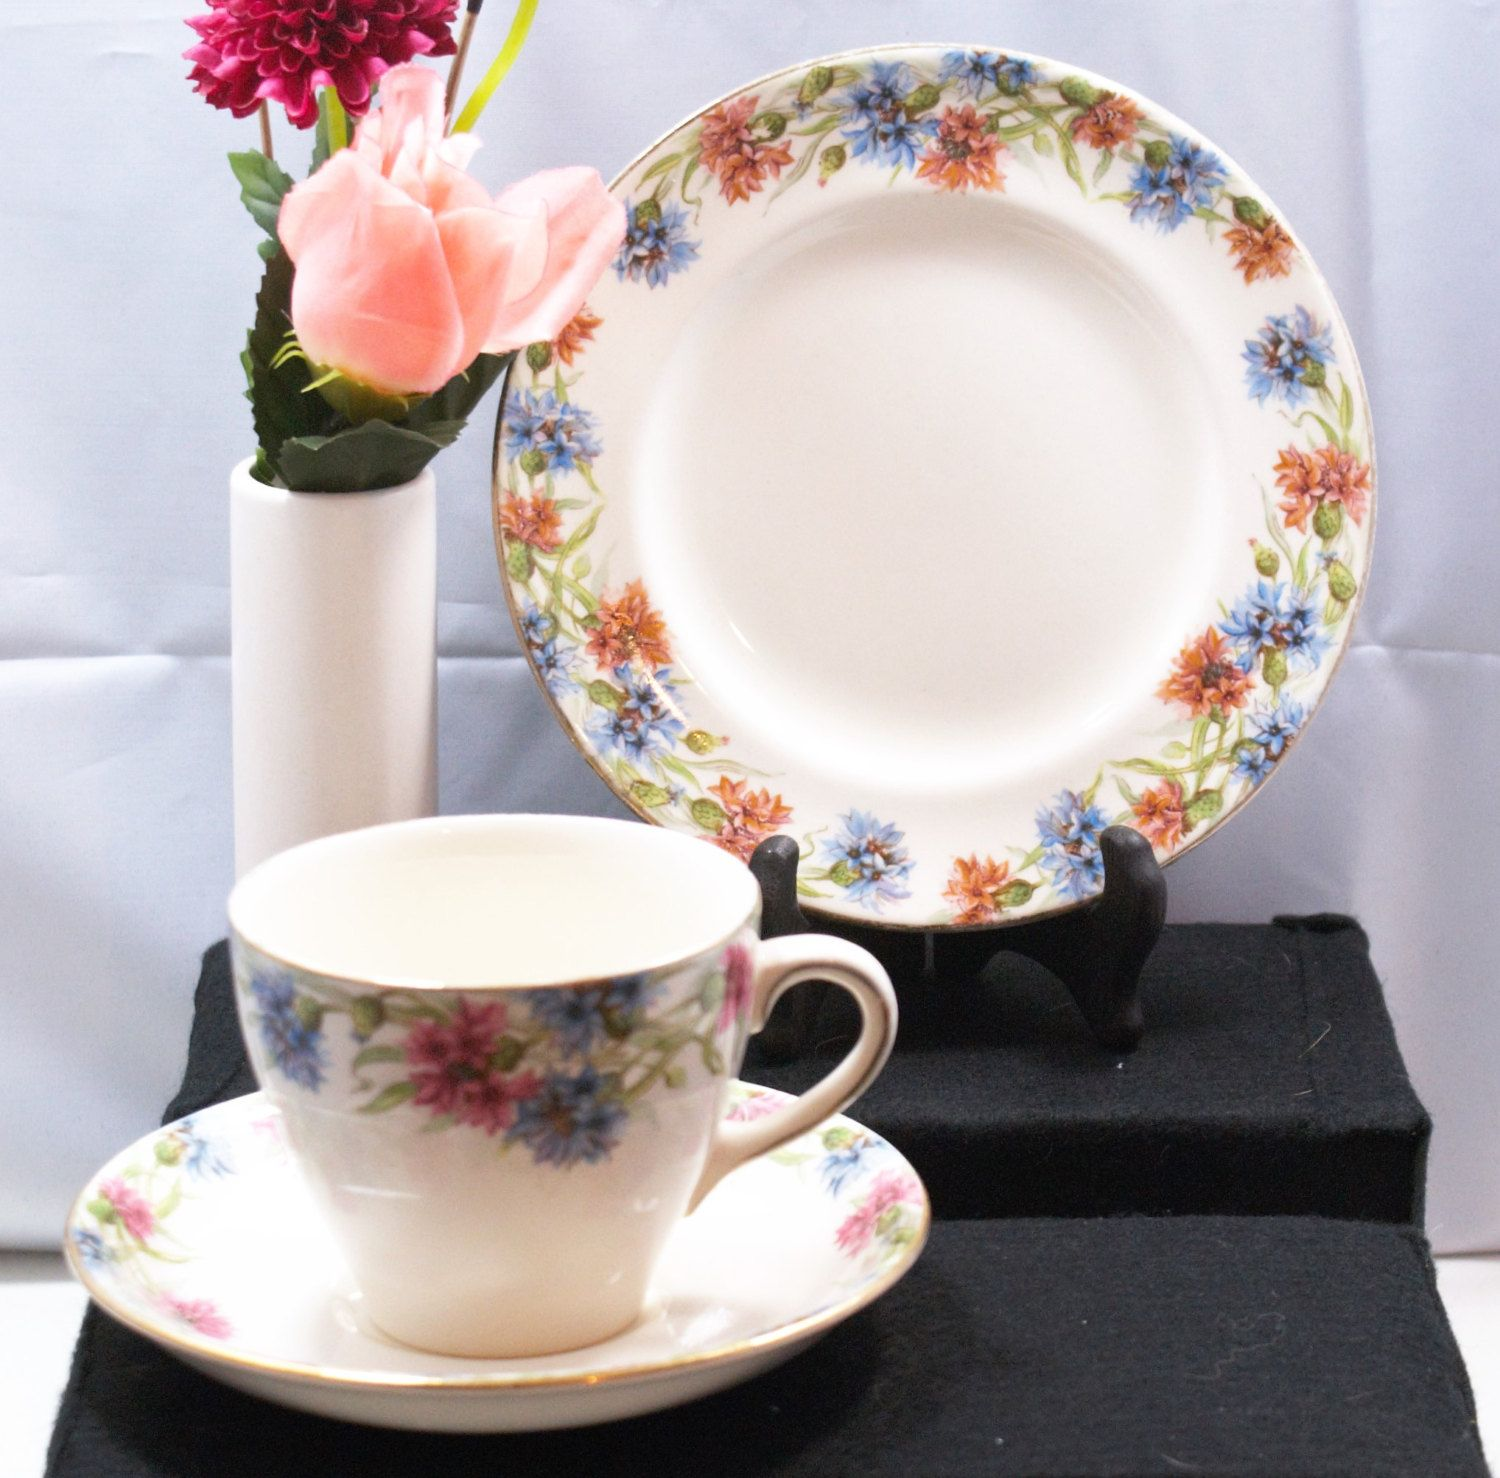 vintage Royal Doulton cornflower patterned trio, cup saucer and plate set , floral patterned collectors cups by MikesNicknacks on Etsy